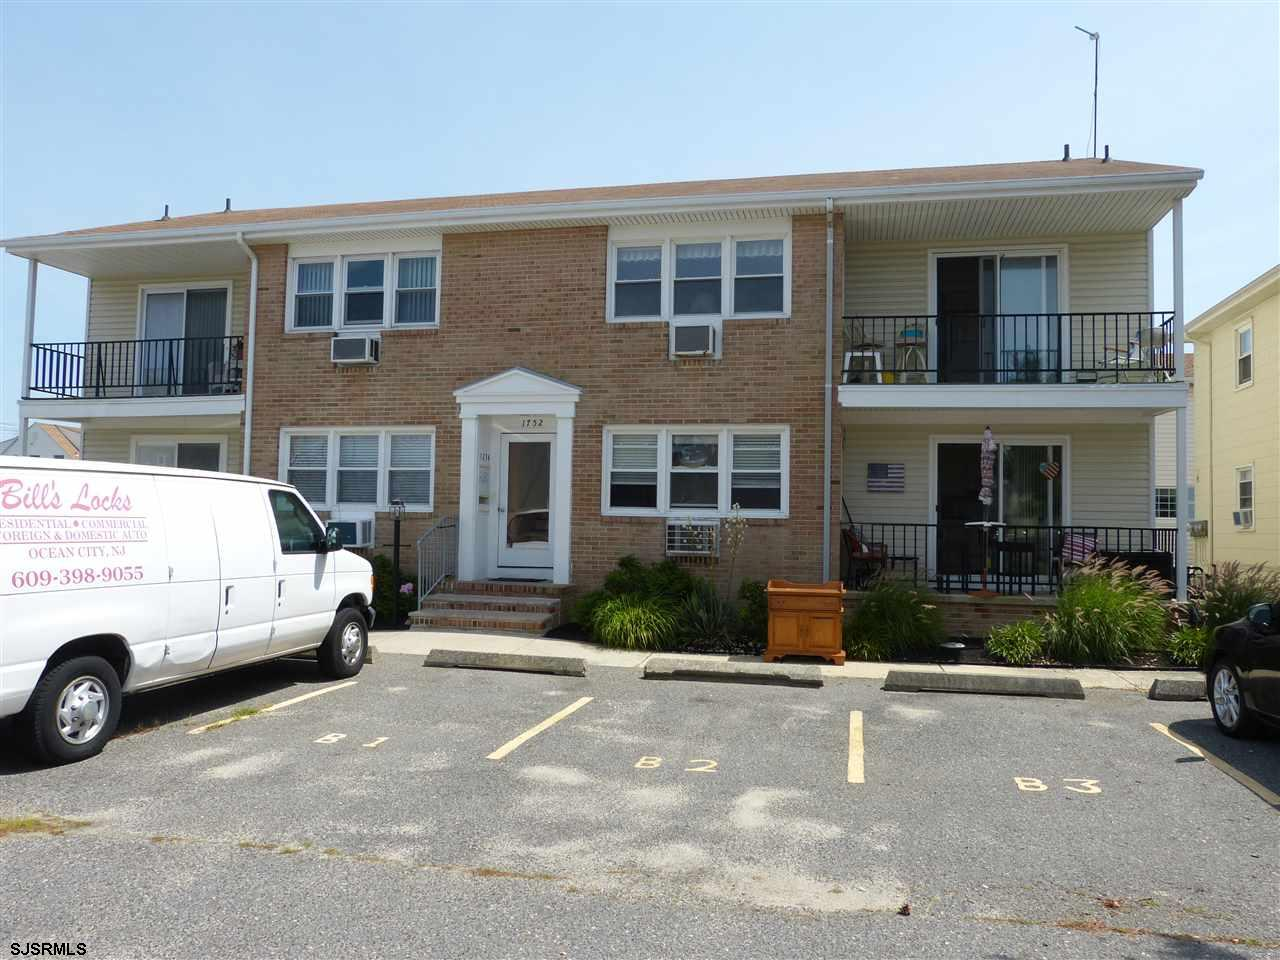 1752 Simpson Ave, Ocean City, NJ 08226